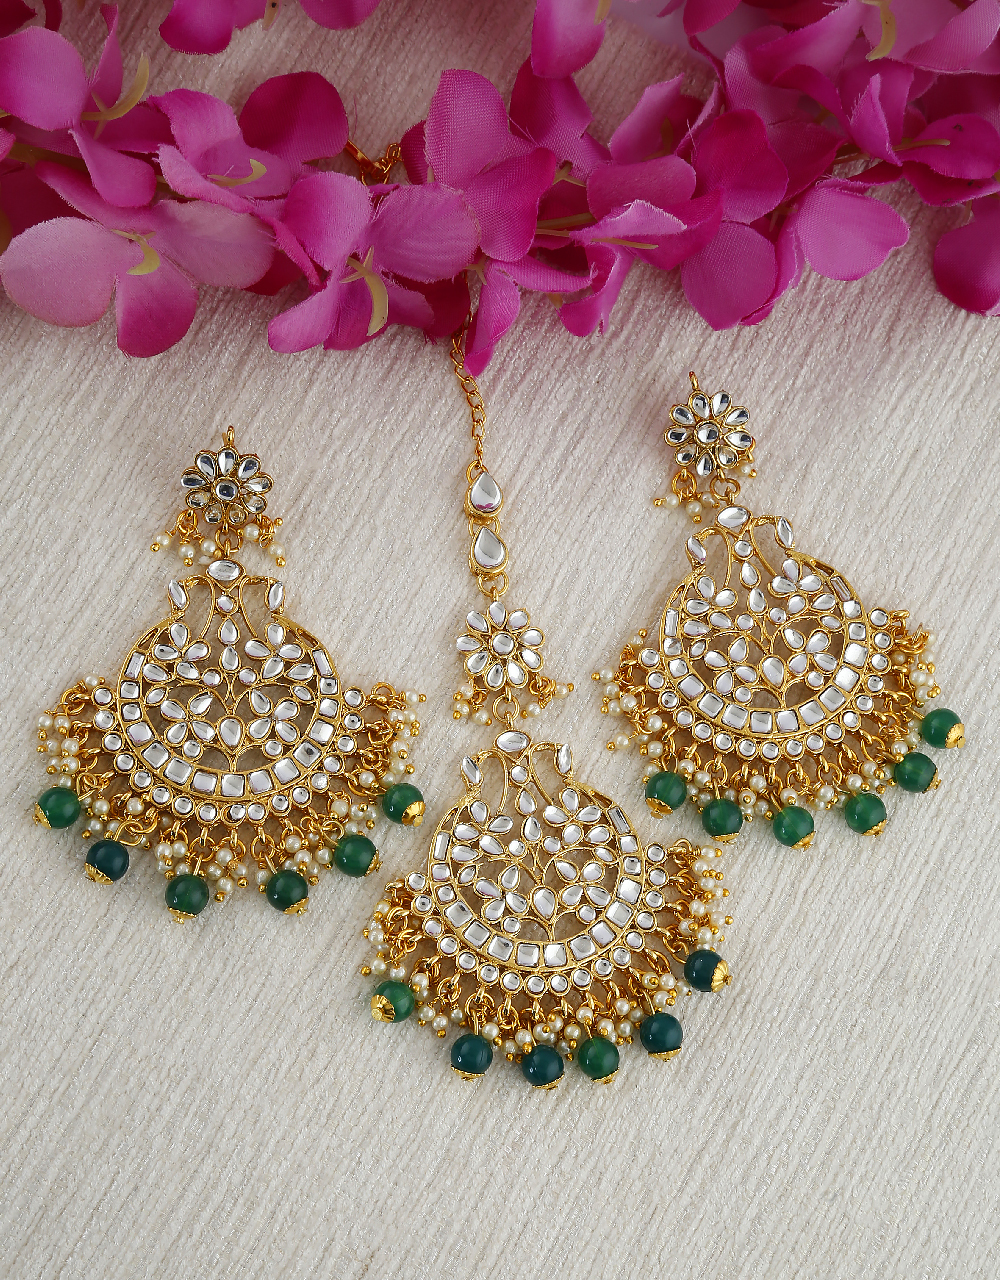 Green Colour Gold Finish Styled With Beads Chandbali Earring With Mang Tika